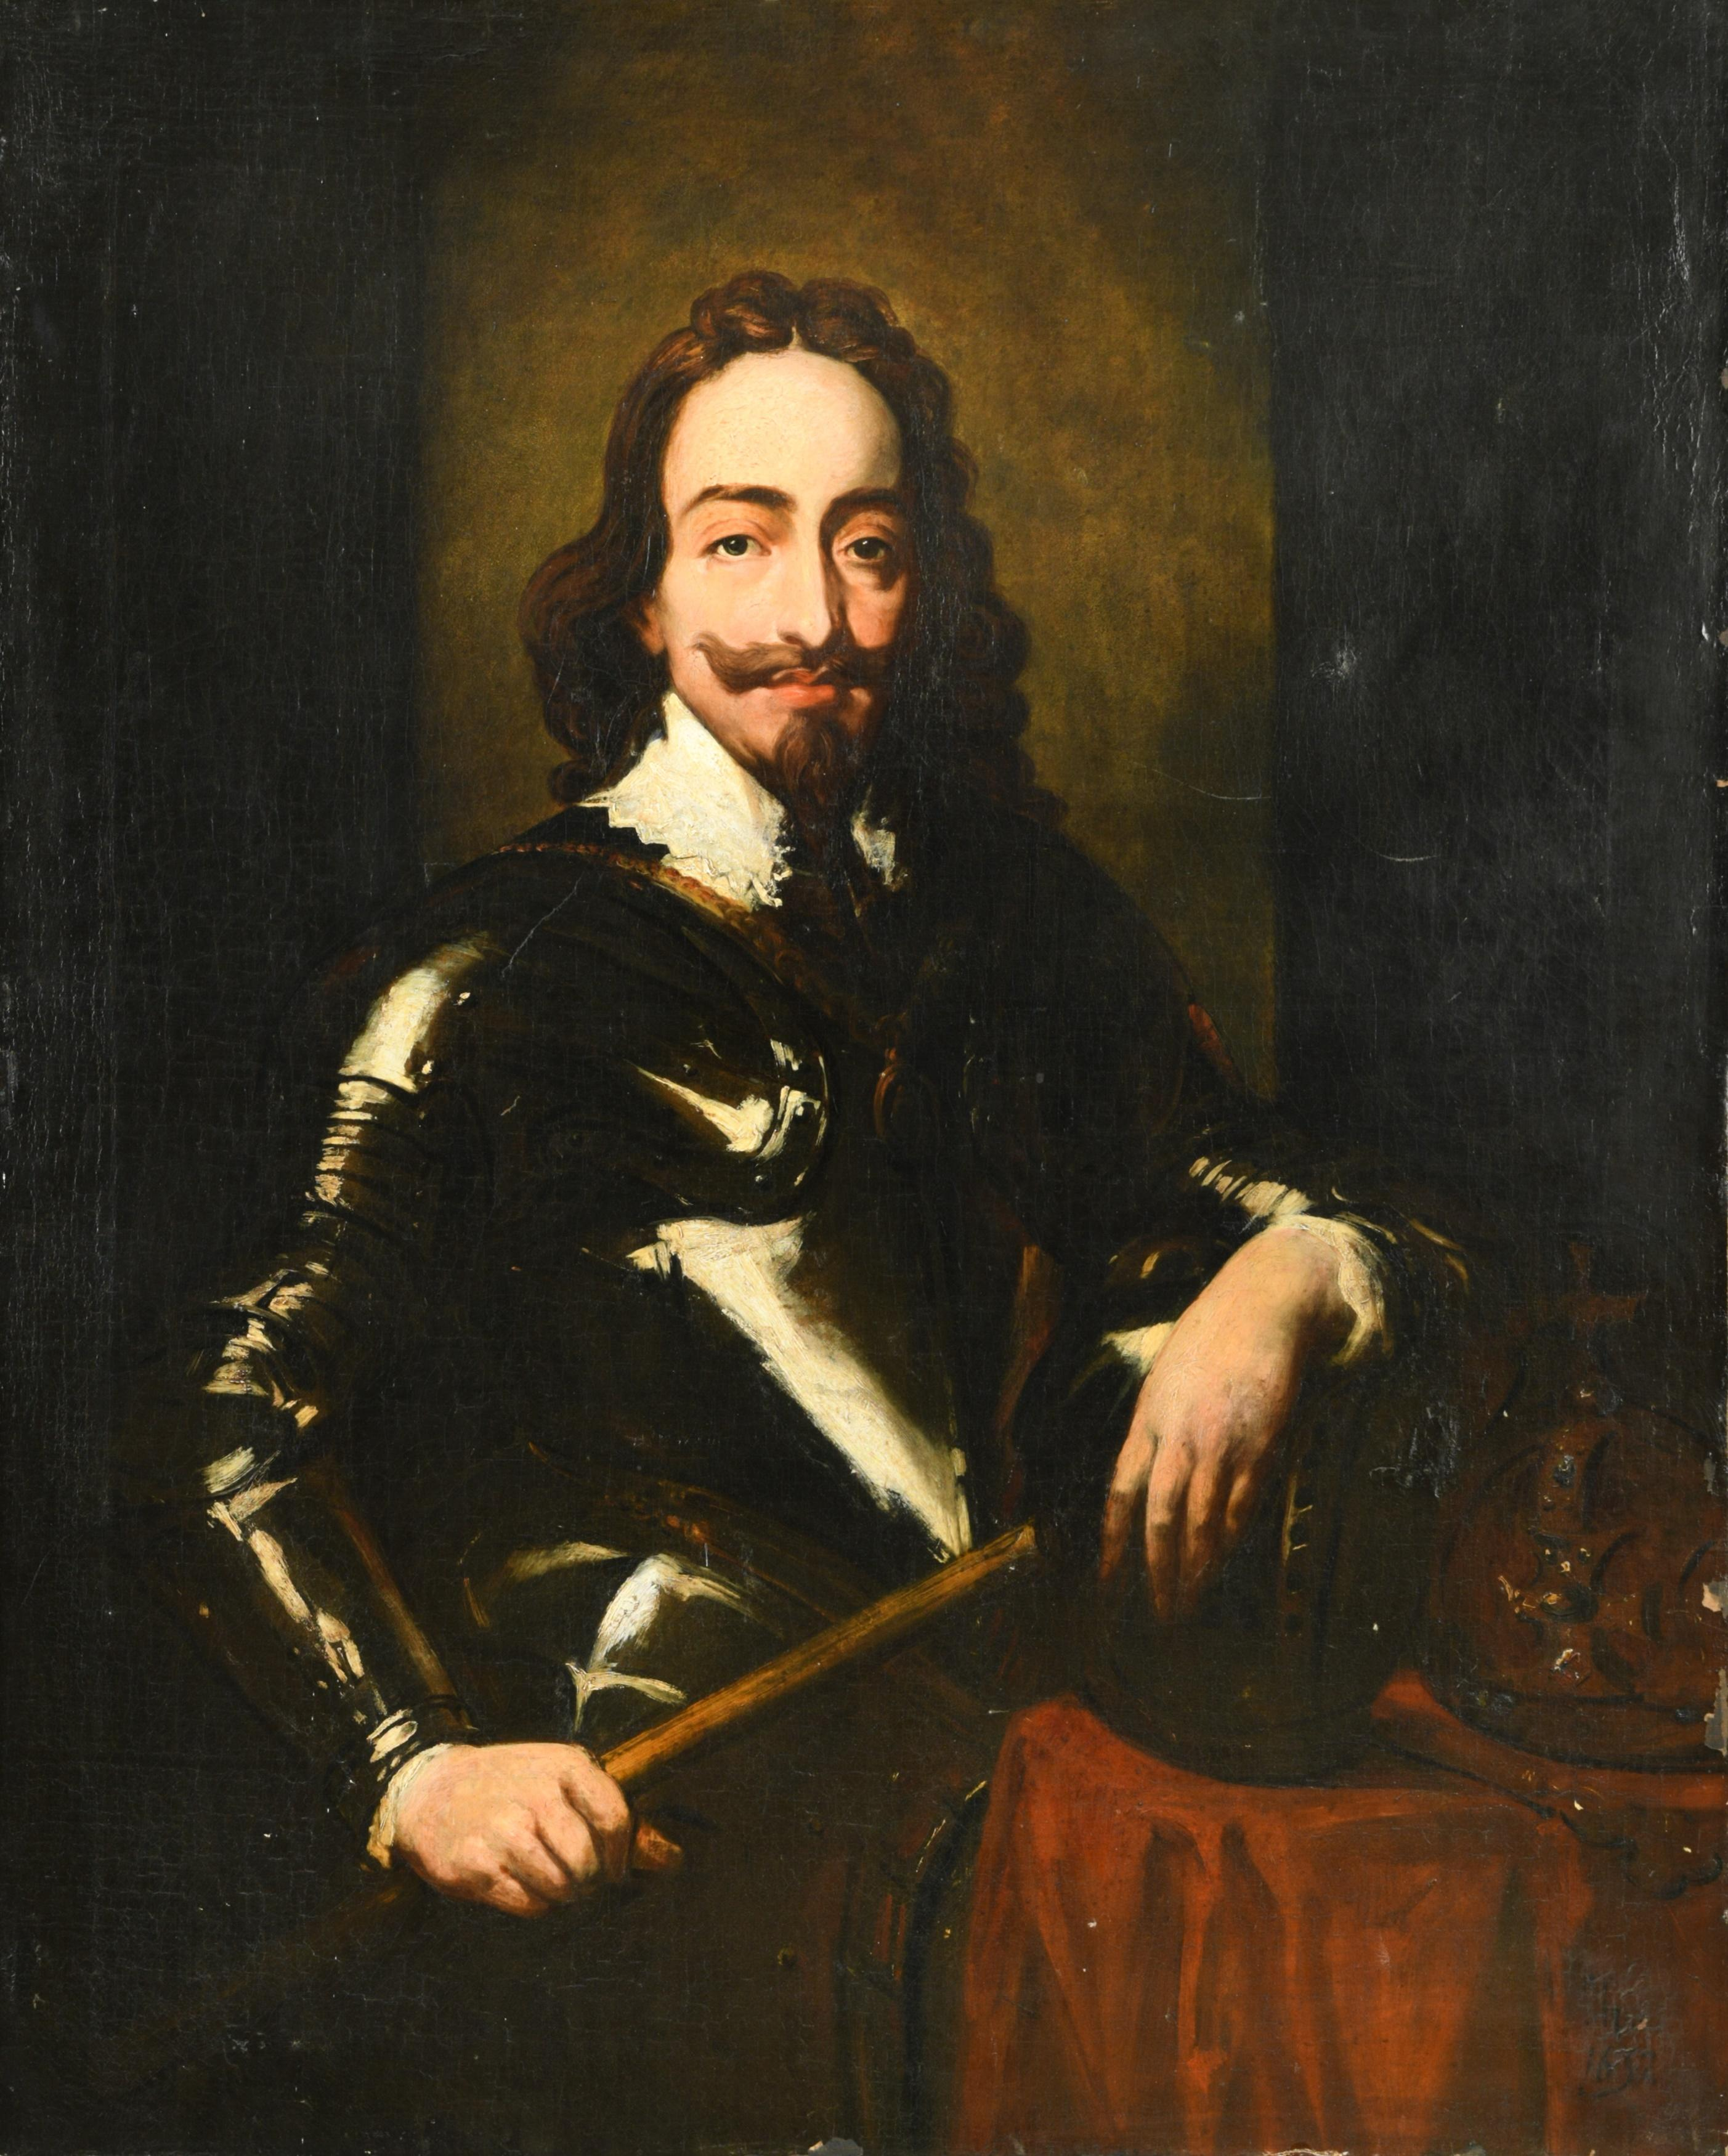 HUGE EARLY 19th CENTURY OIL PAINTING - PORTRAIT KING CHARLES 1ST AFTER VAN DYCK